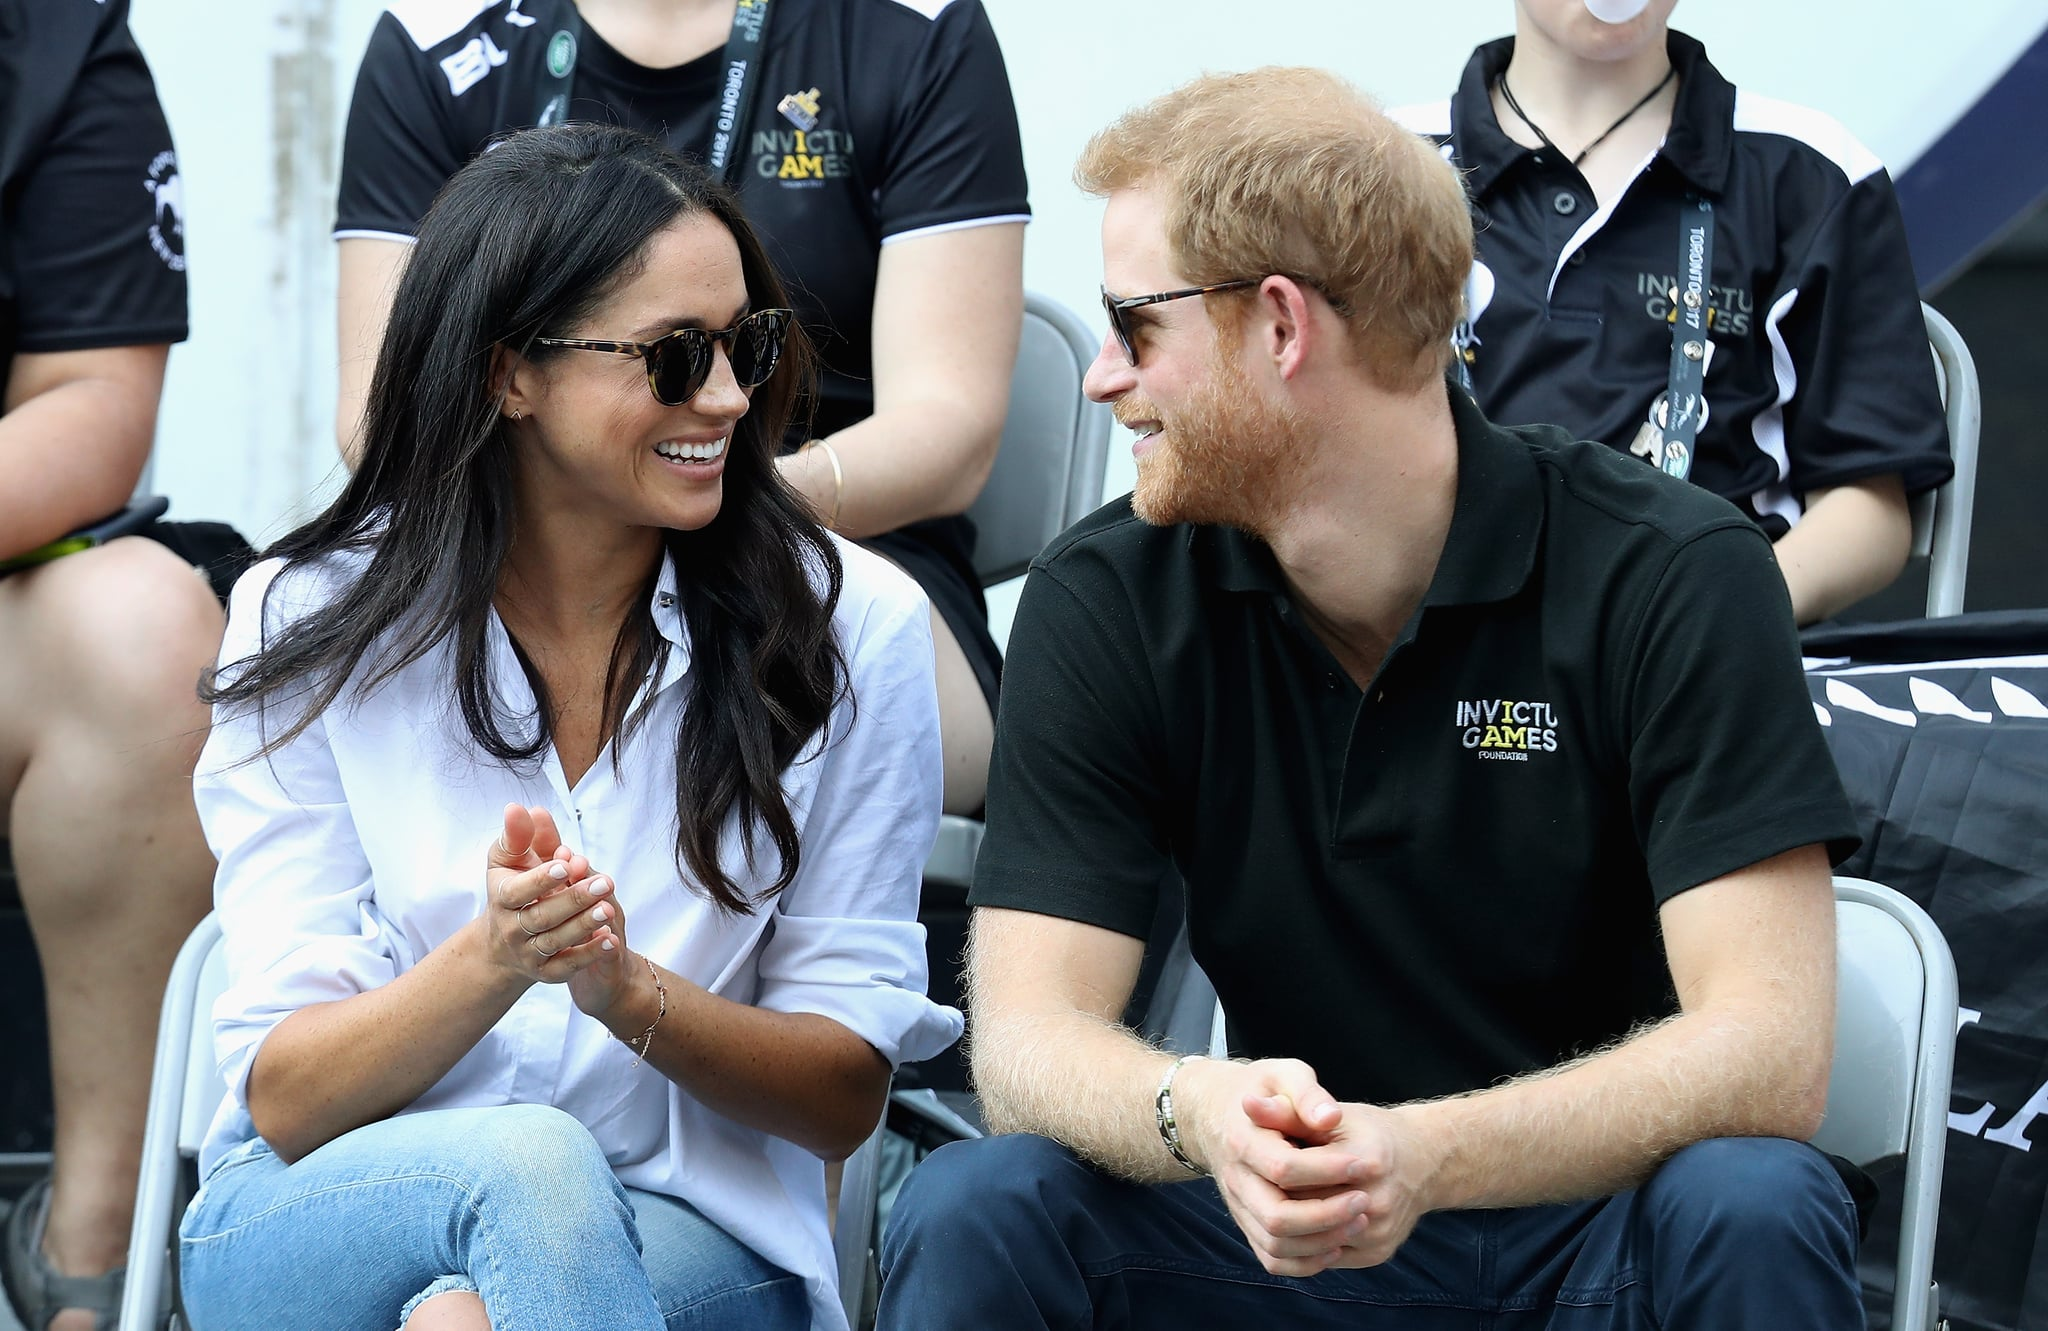 Announcement of Prince Harry and Meghan Markle Engagement 'Imminent' as Bookmakers Suspend Betting